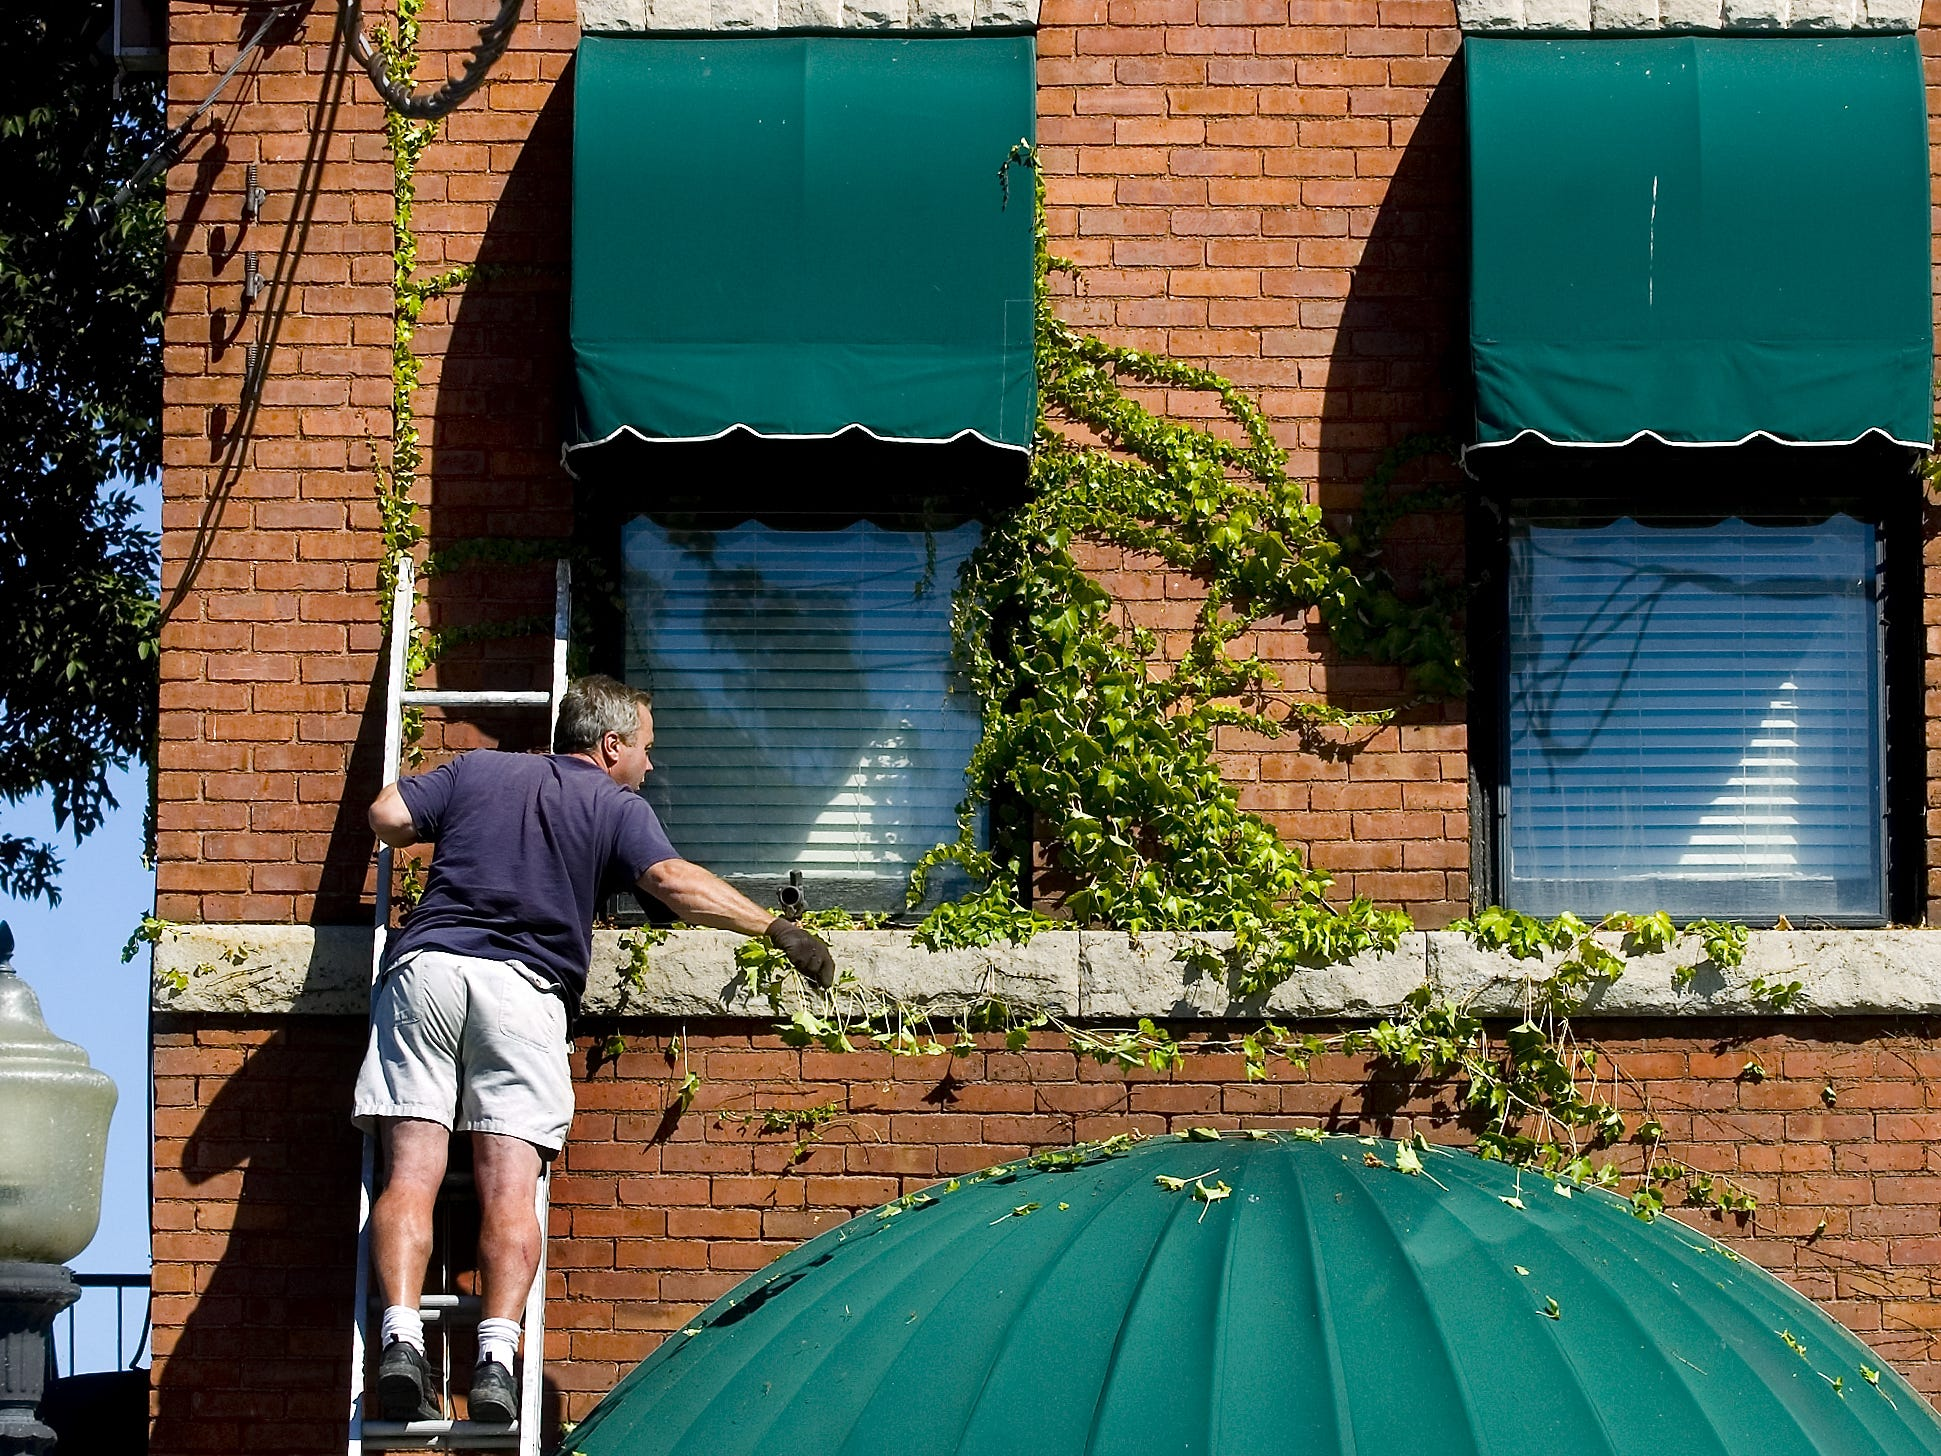 Bobby Ehrich, of the Number 5 Restaurant, removes the vines that have been growing on the historic building in August of 2007. The vines were starting to damage the building, a former firehouse, which was built in 1897.